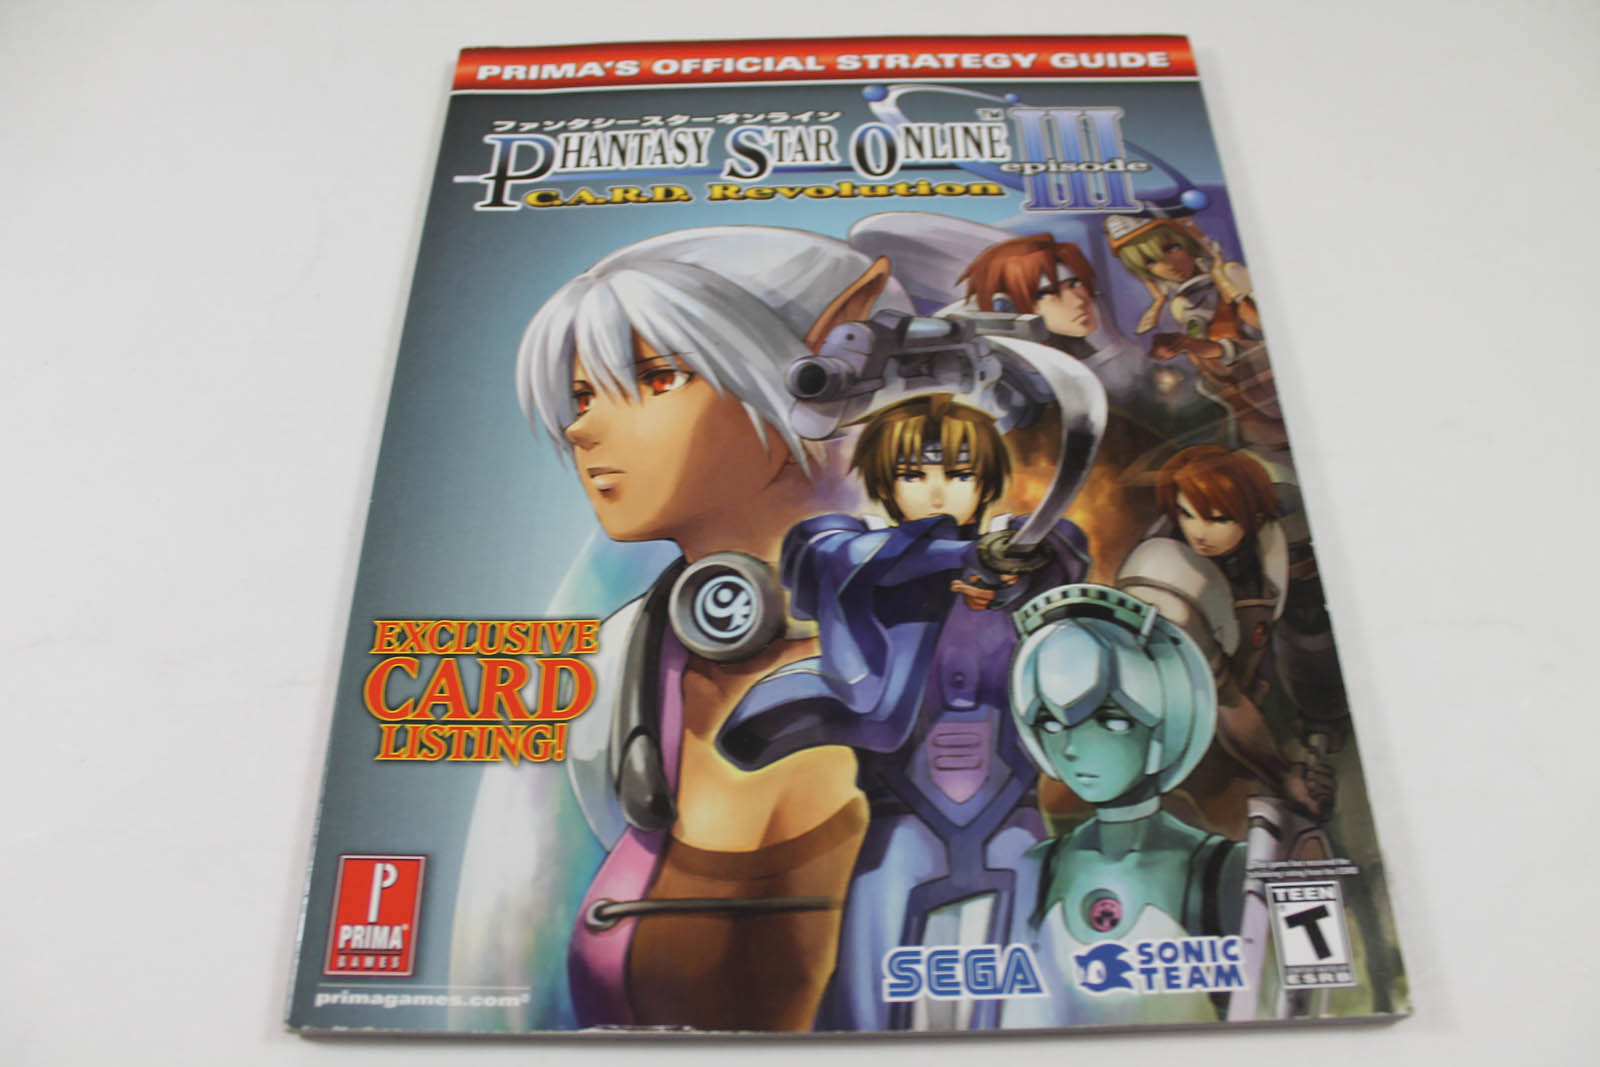 Phantasy Star Online Episode III - C.A.R.D. Revolution Prima's Official Strategy Guide